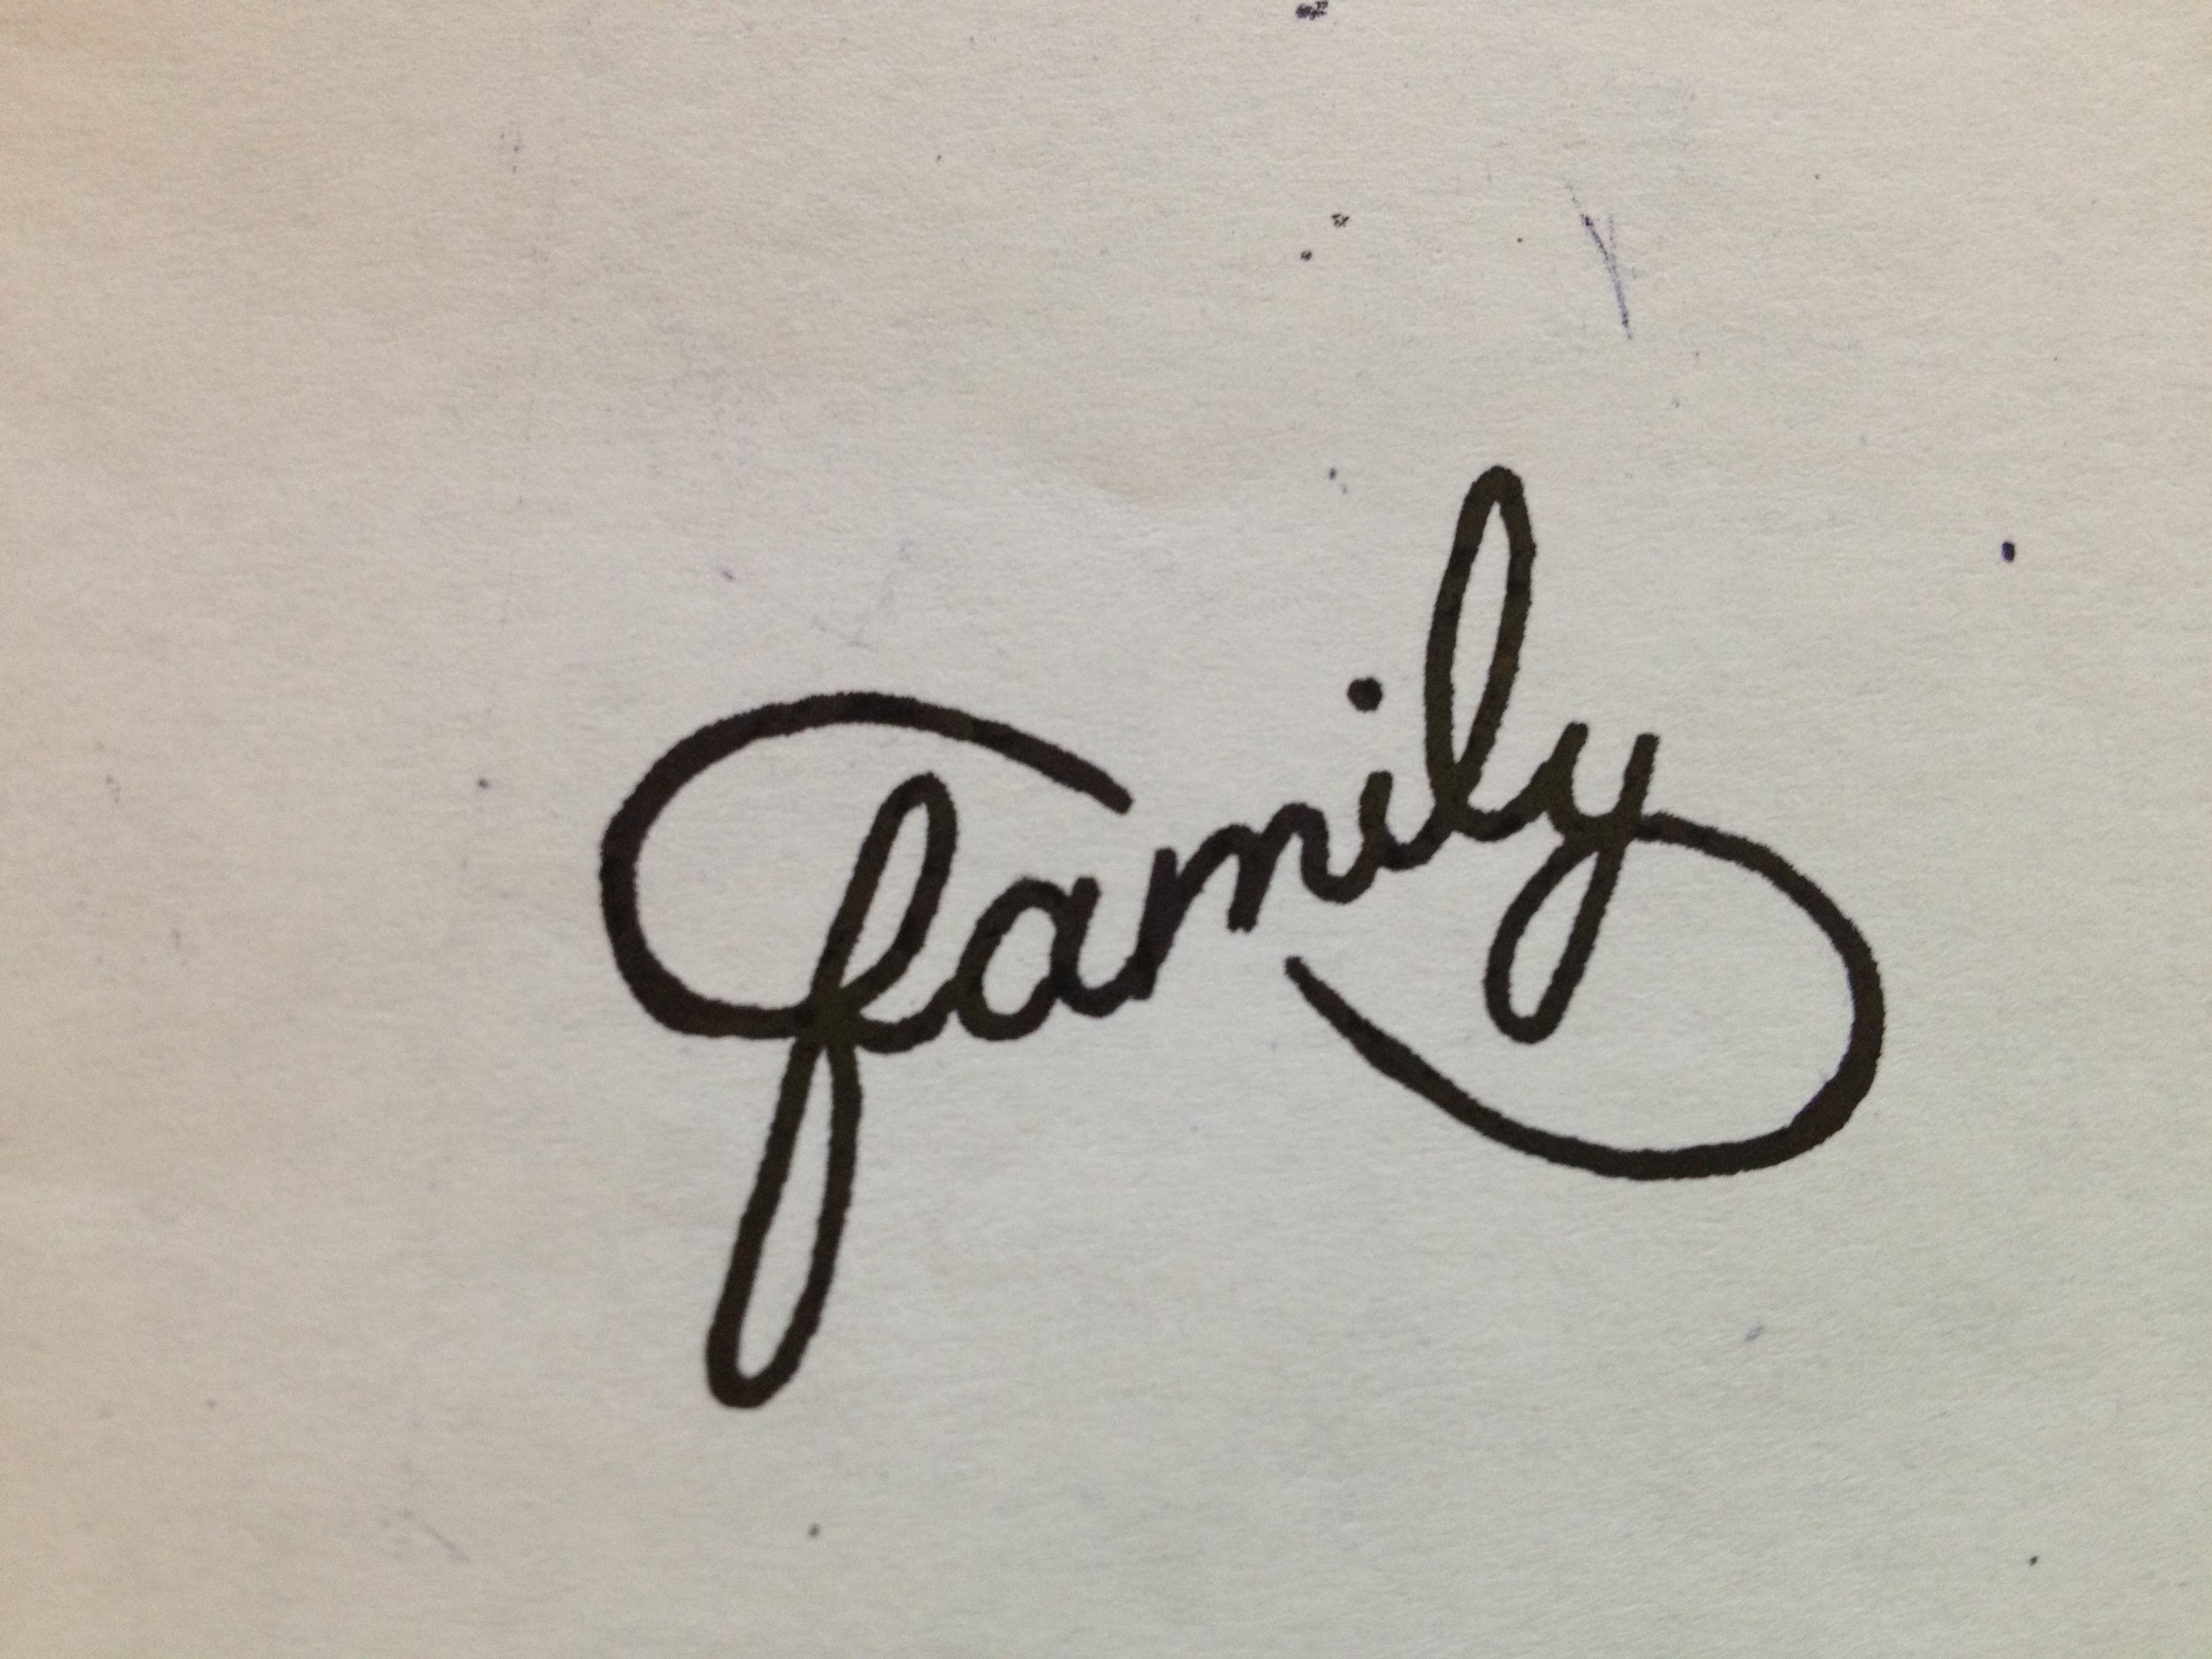 Cool Idea For A Tattoo Family Intwined In An Infinity Symbol